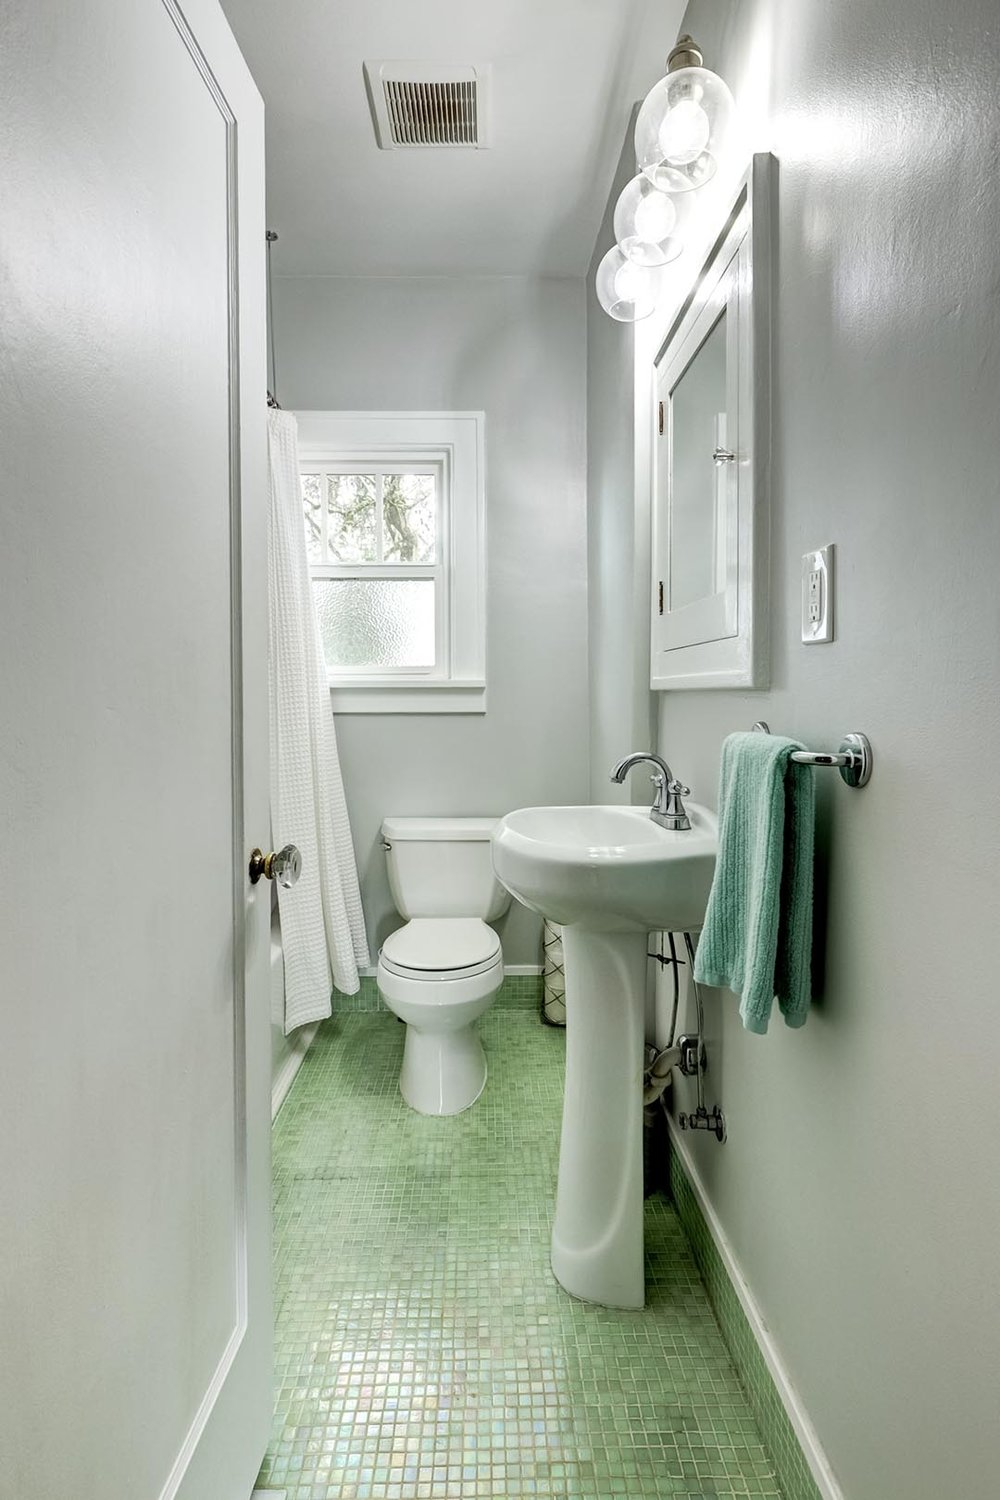 Bathroom-005.jpg